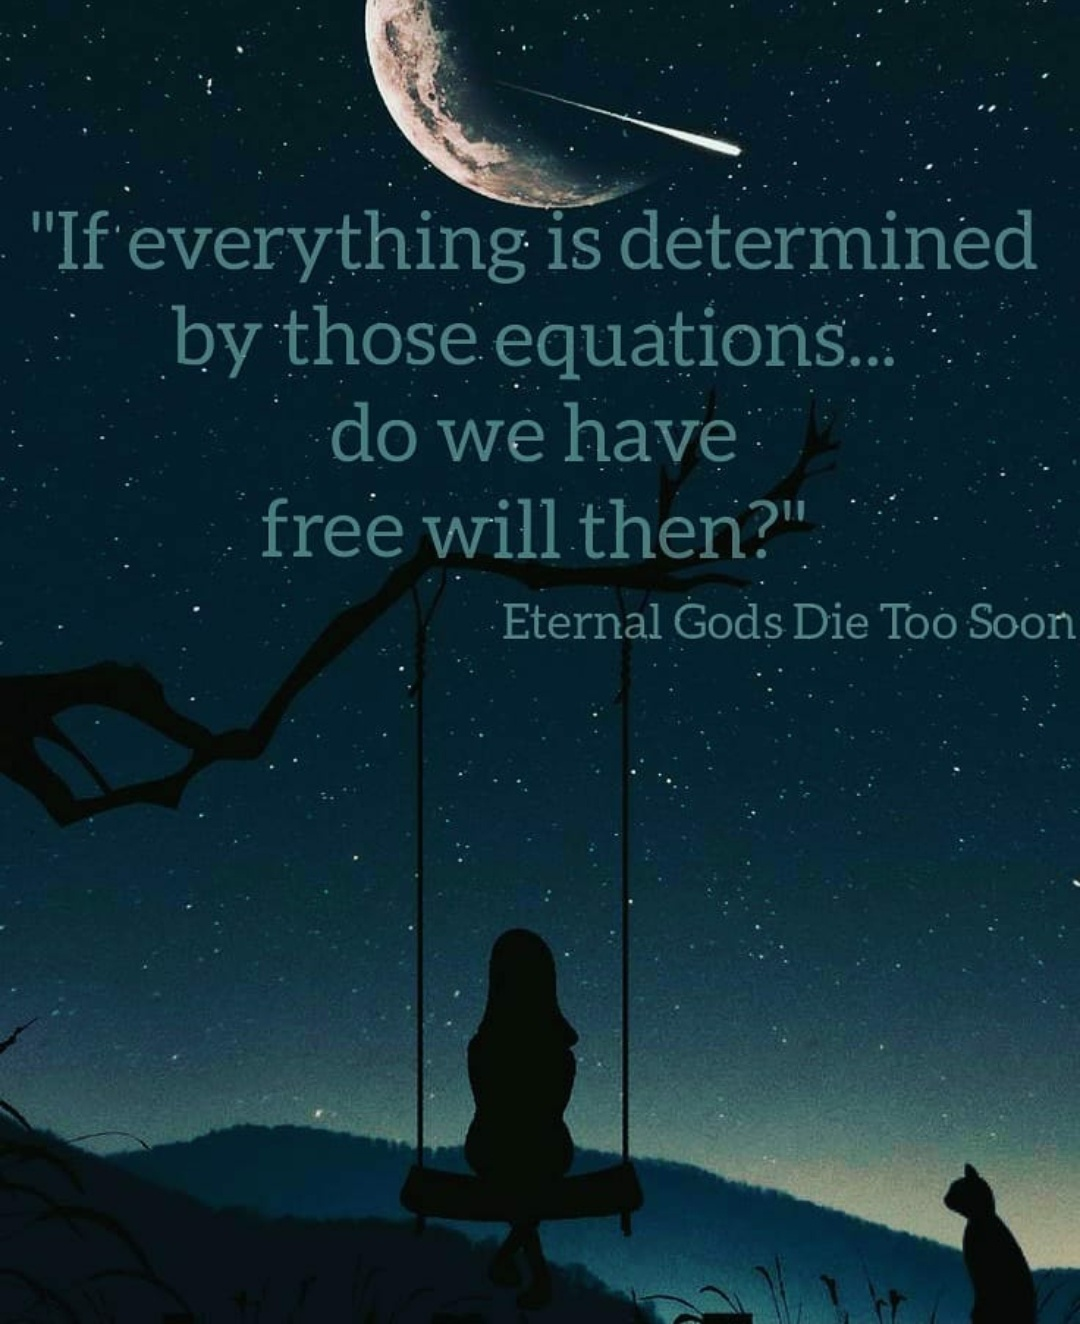 """If everything is determined by those equations… do we have free till then?' Eternal Gods Die Too Soon by Beka Modrekiladze [1080×1324]"